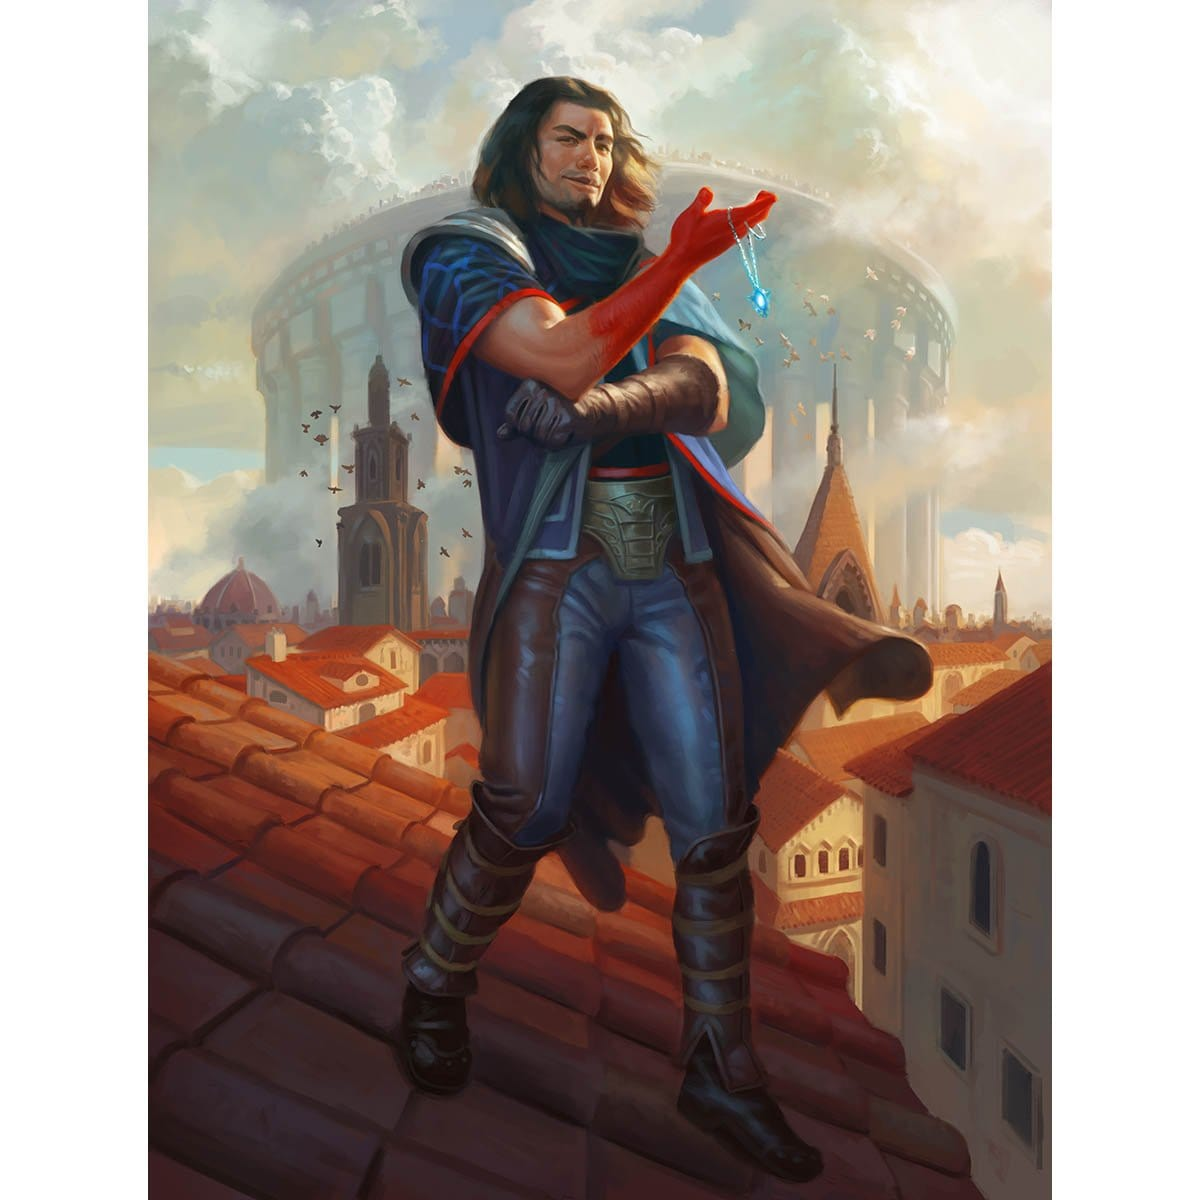 Dack Fayden Print - Print - Original Magic Art - Accessories for Magic the Gathering and other card games